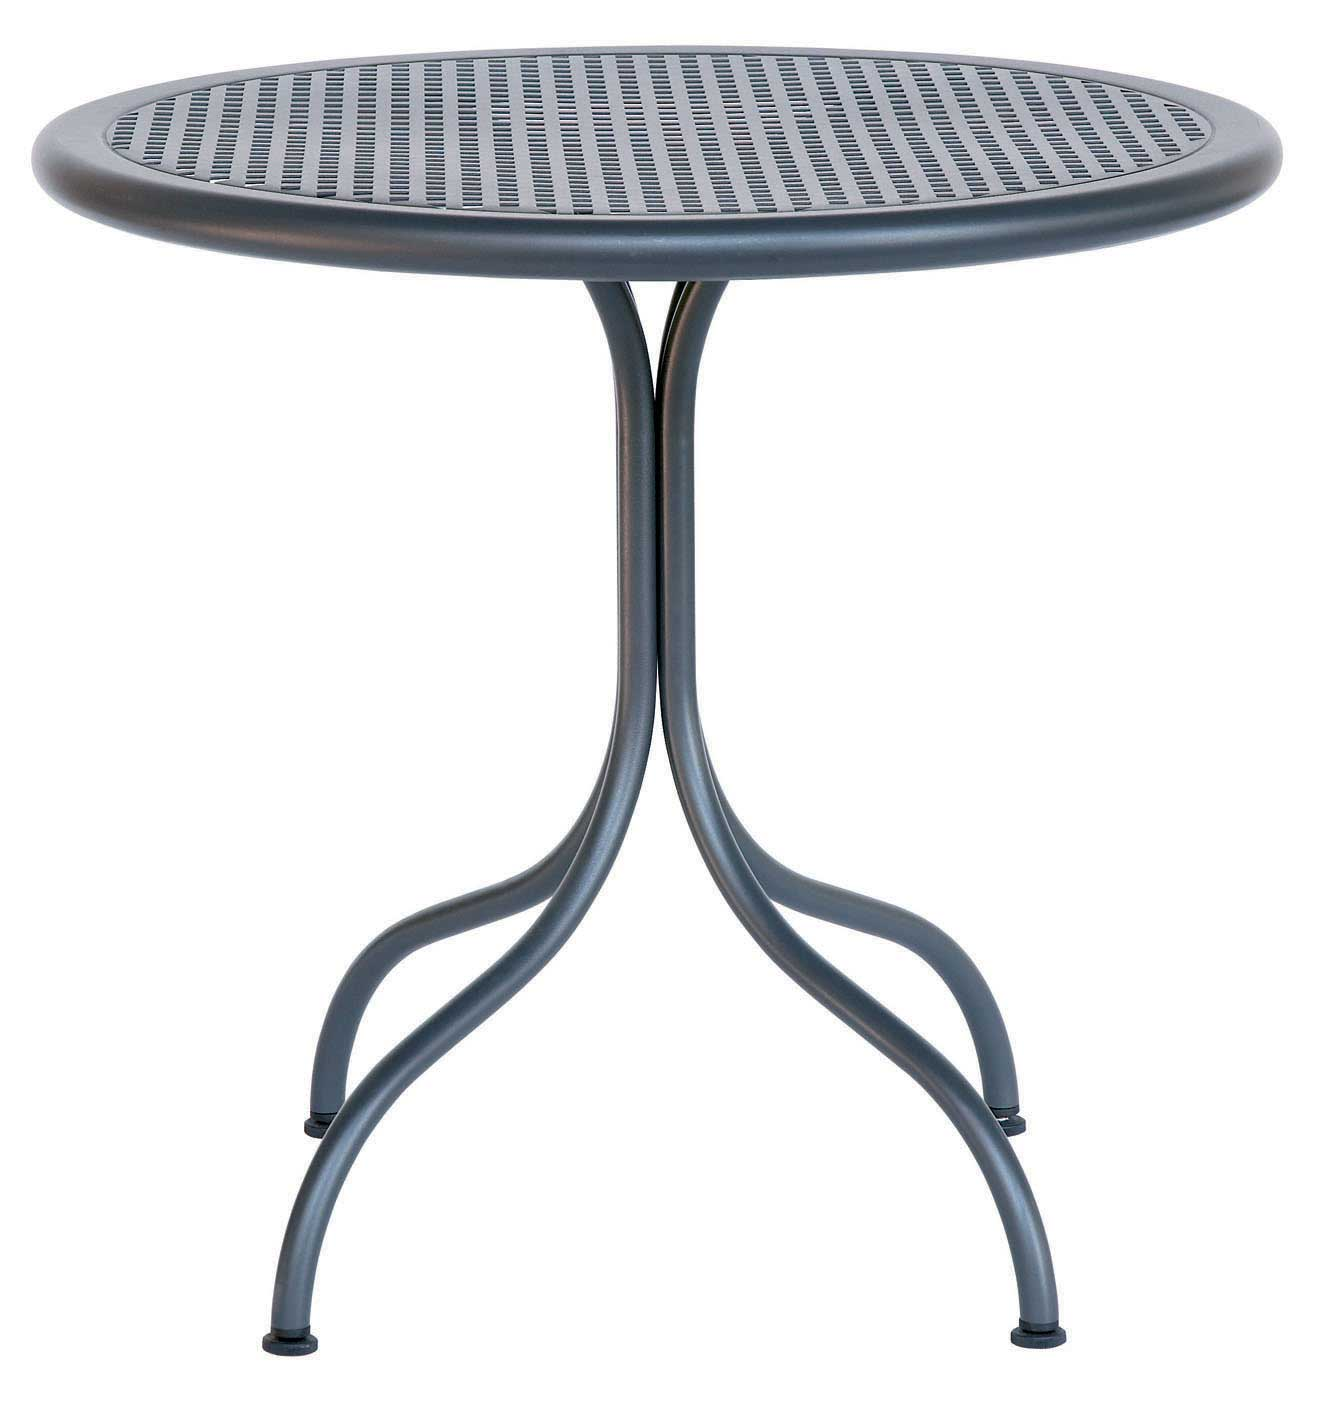 black top round folding metal table